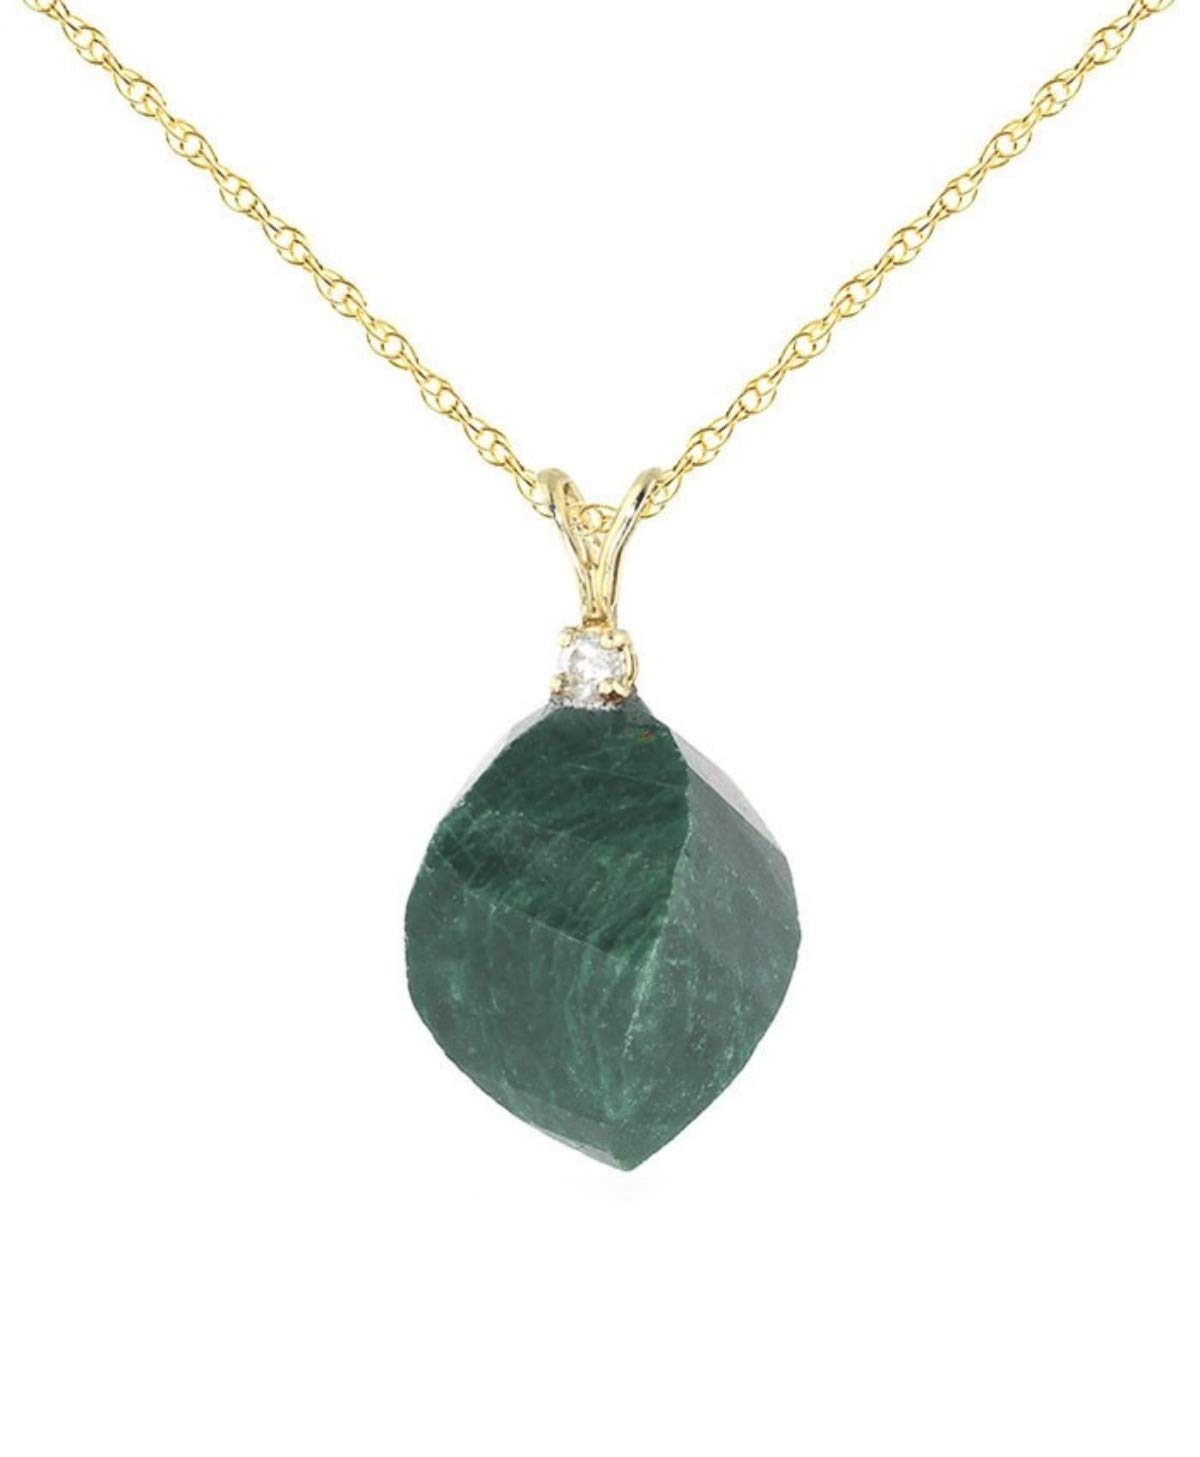 14K 20'' Solid Yellow Gold Necklace with Natural Diamond and Twisted Briolette Emerald